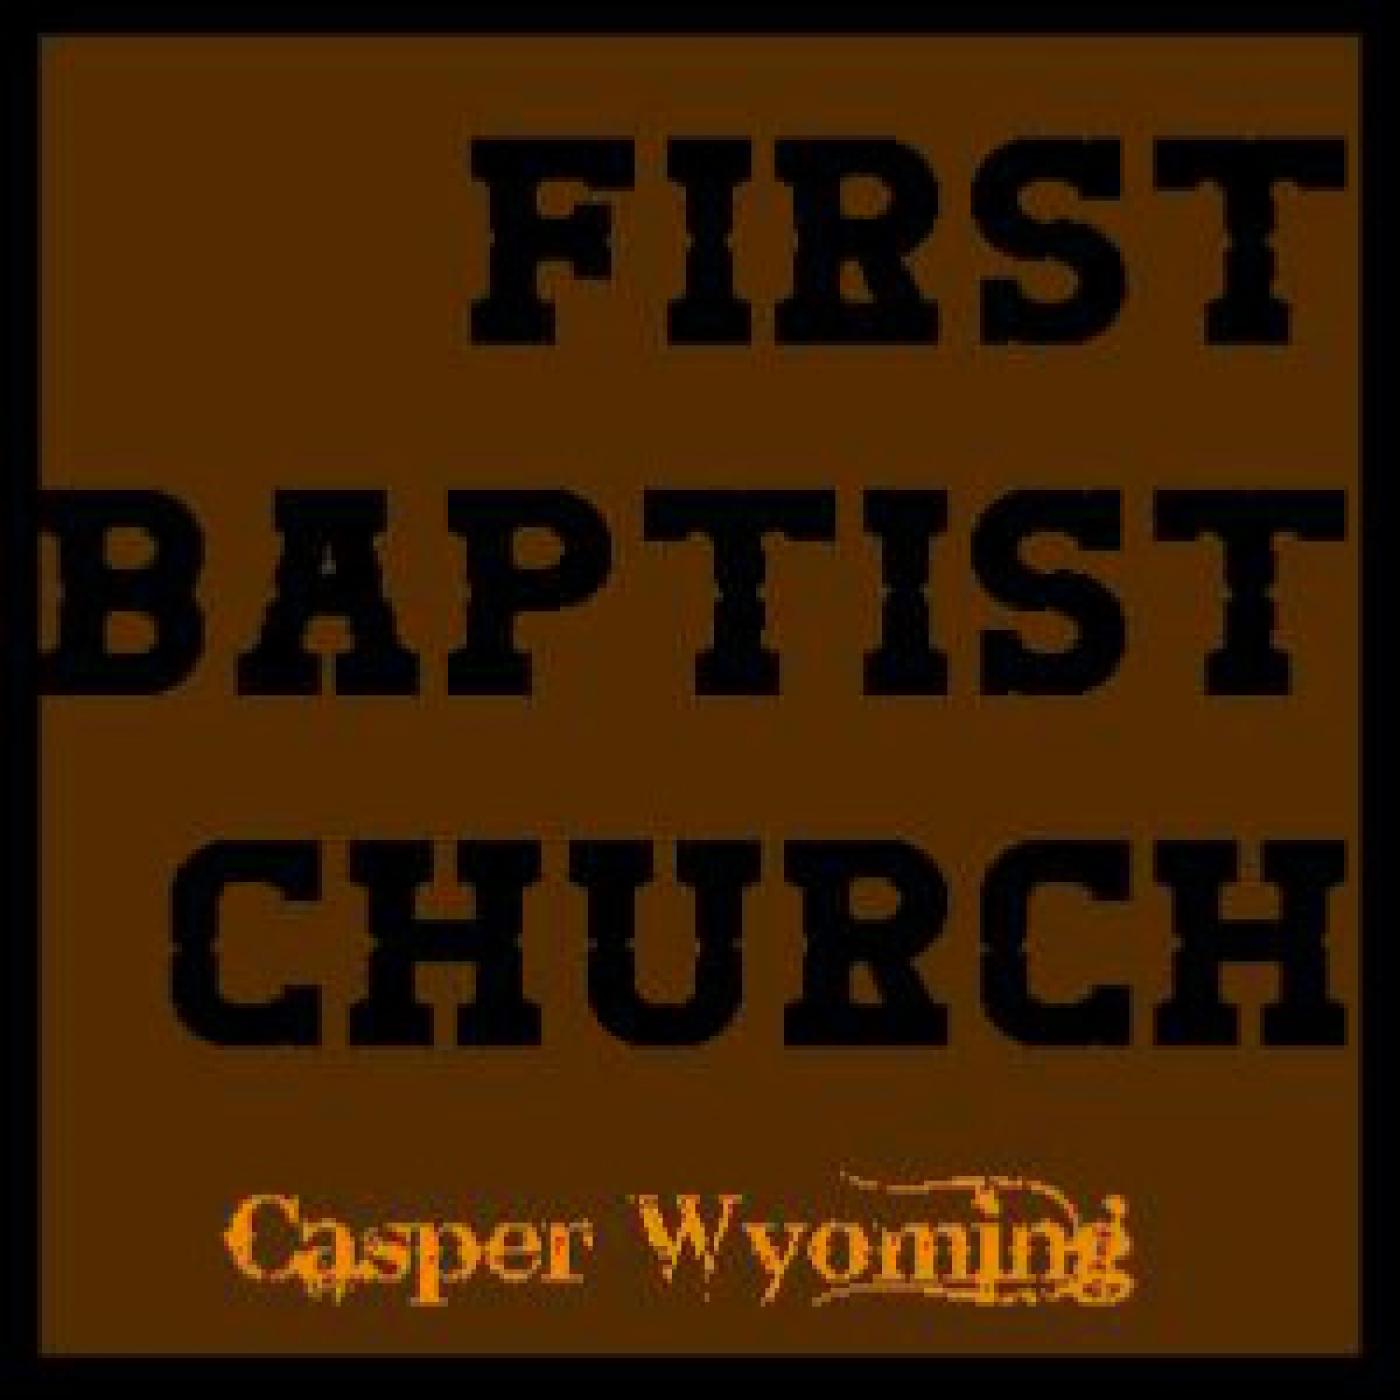 First Baptist Church Casper